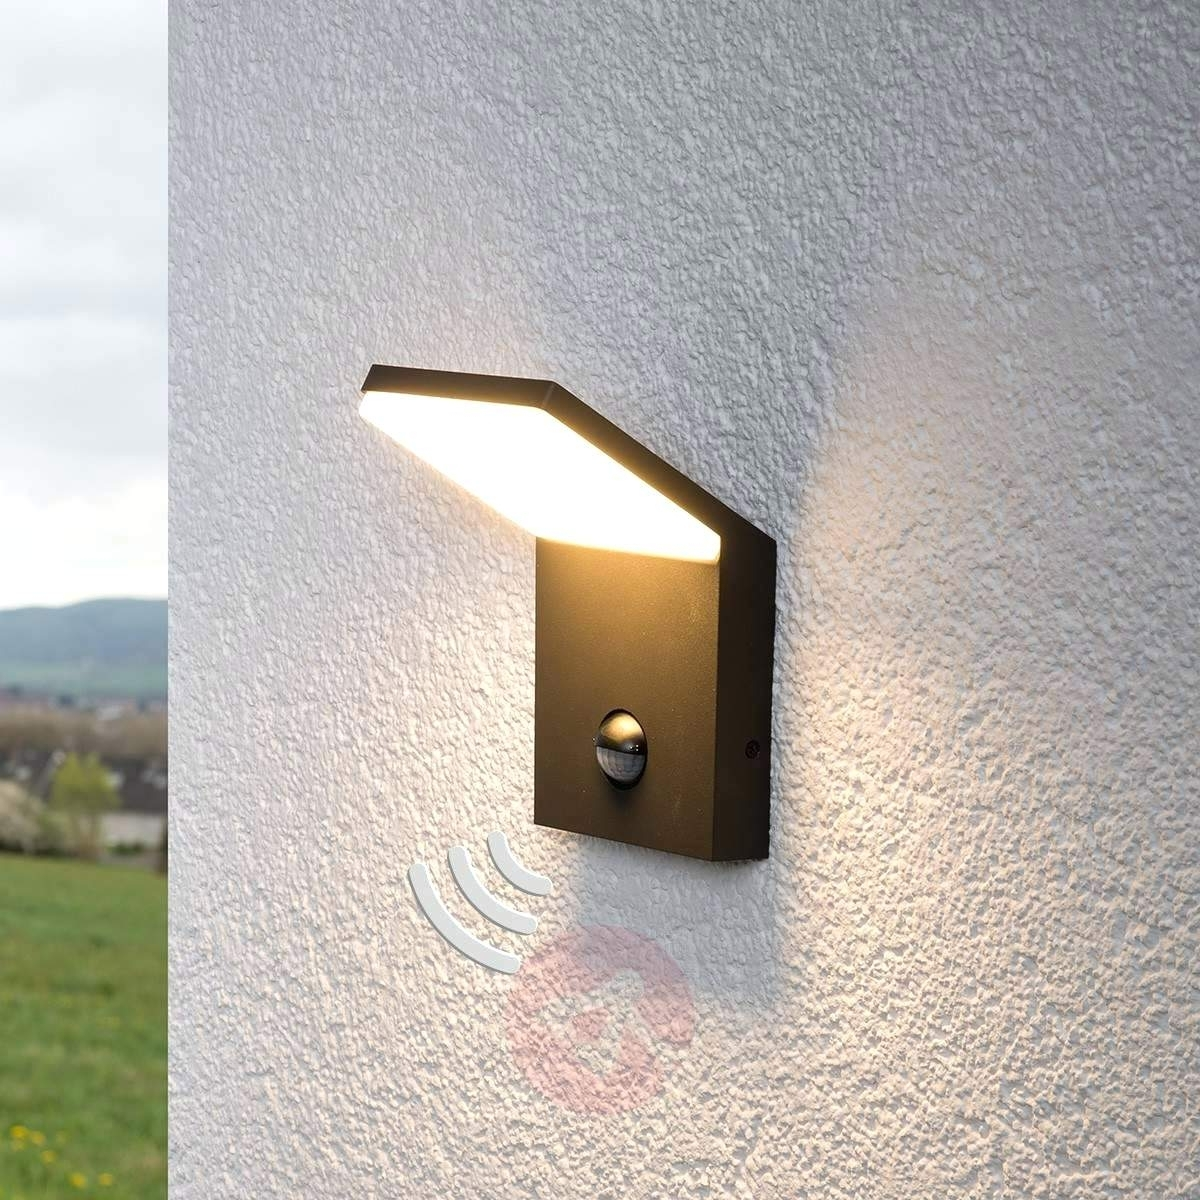 2019 Light : Best Wall Mounted Solar Lamp Pir Led Light With Outdoor With Regard To Outdoor Wall Led Lighting (View 13 of 20)